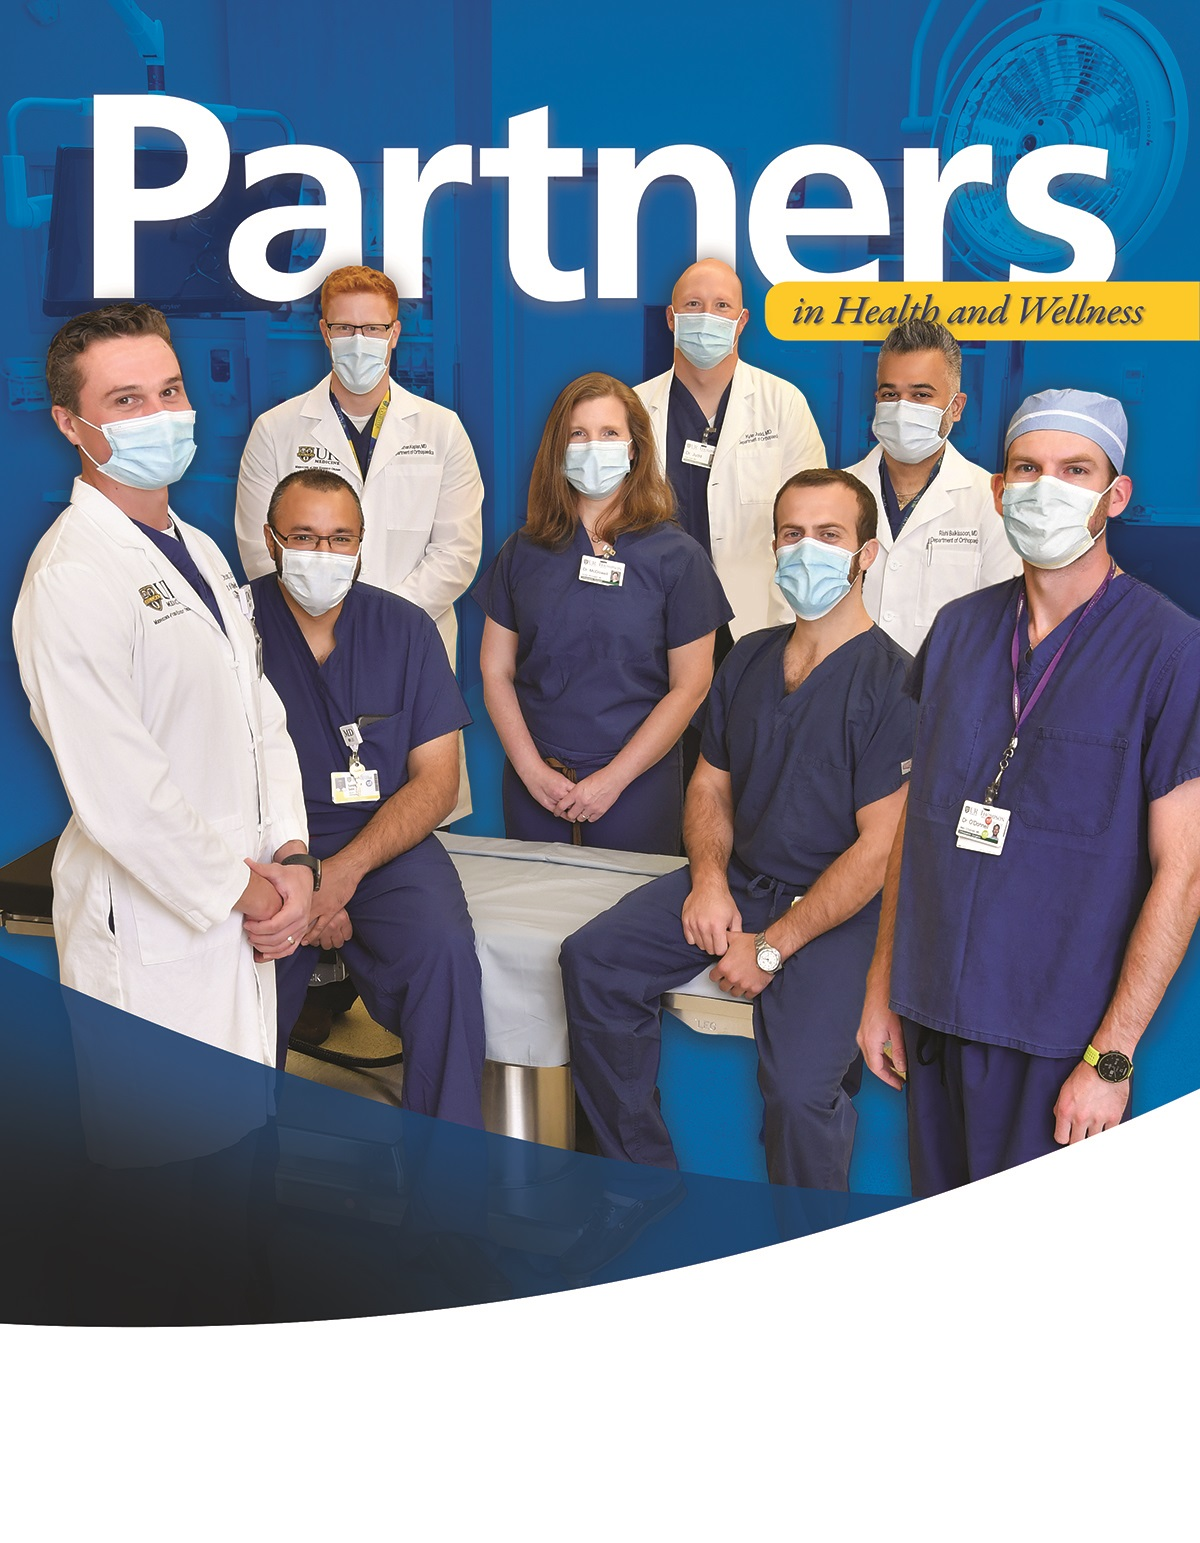 Partners Magazine Cover